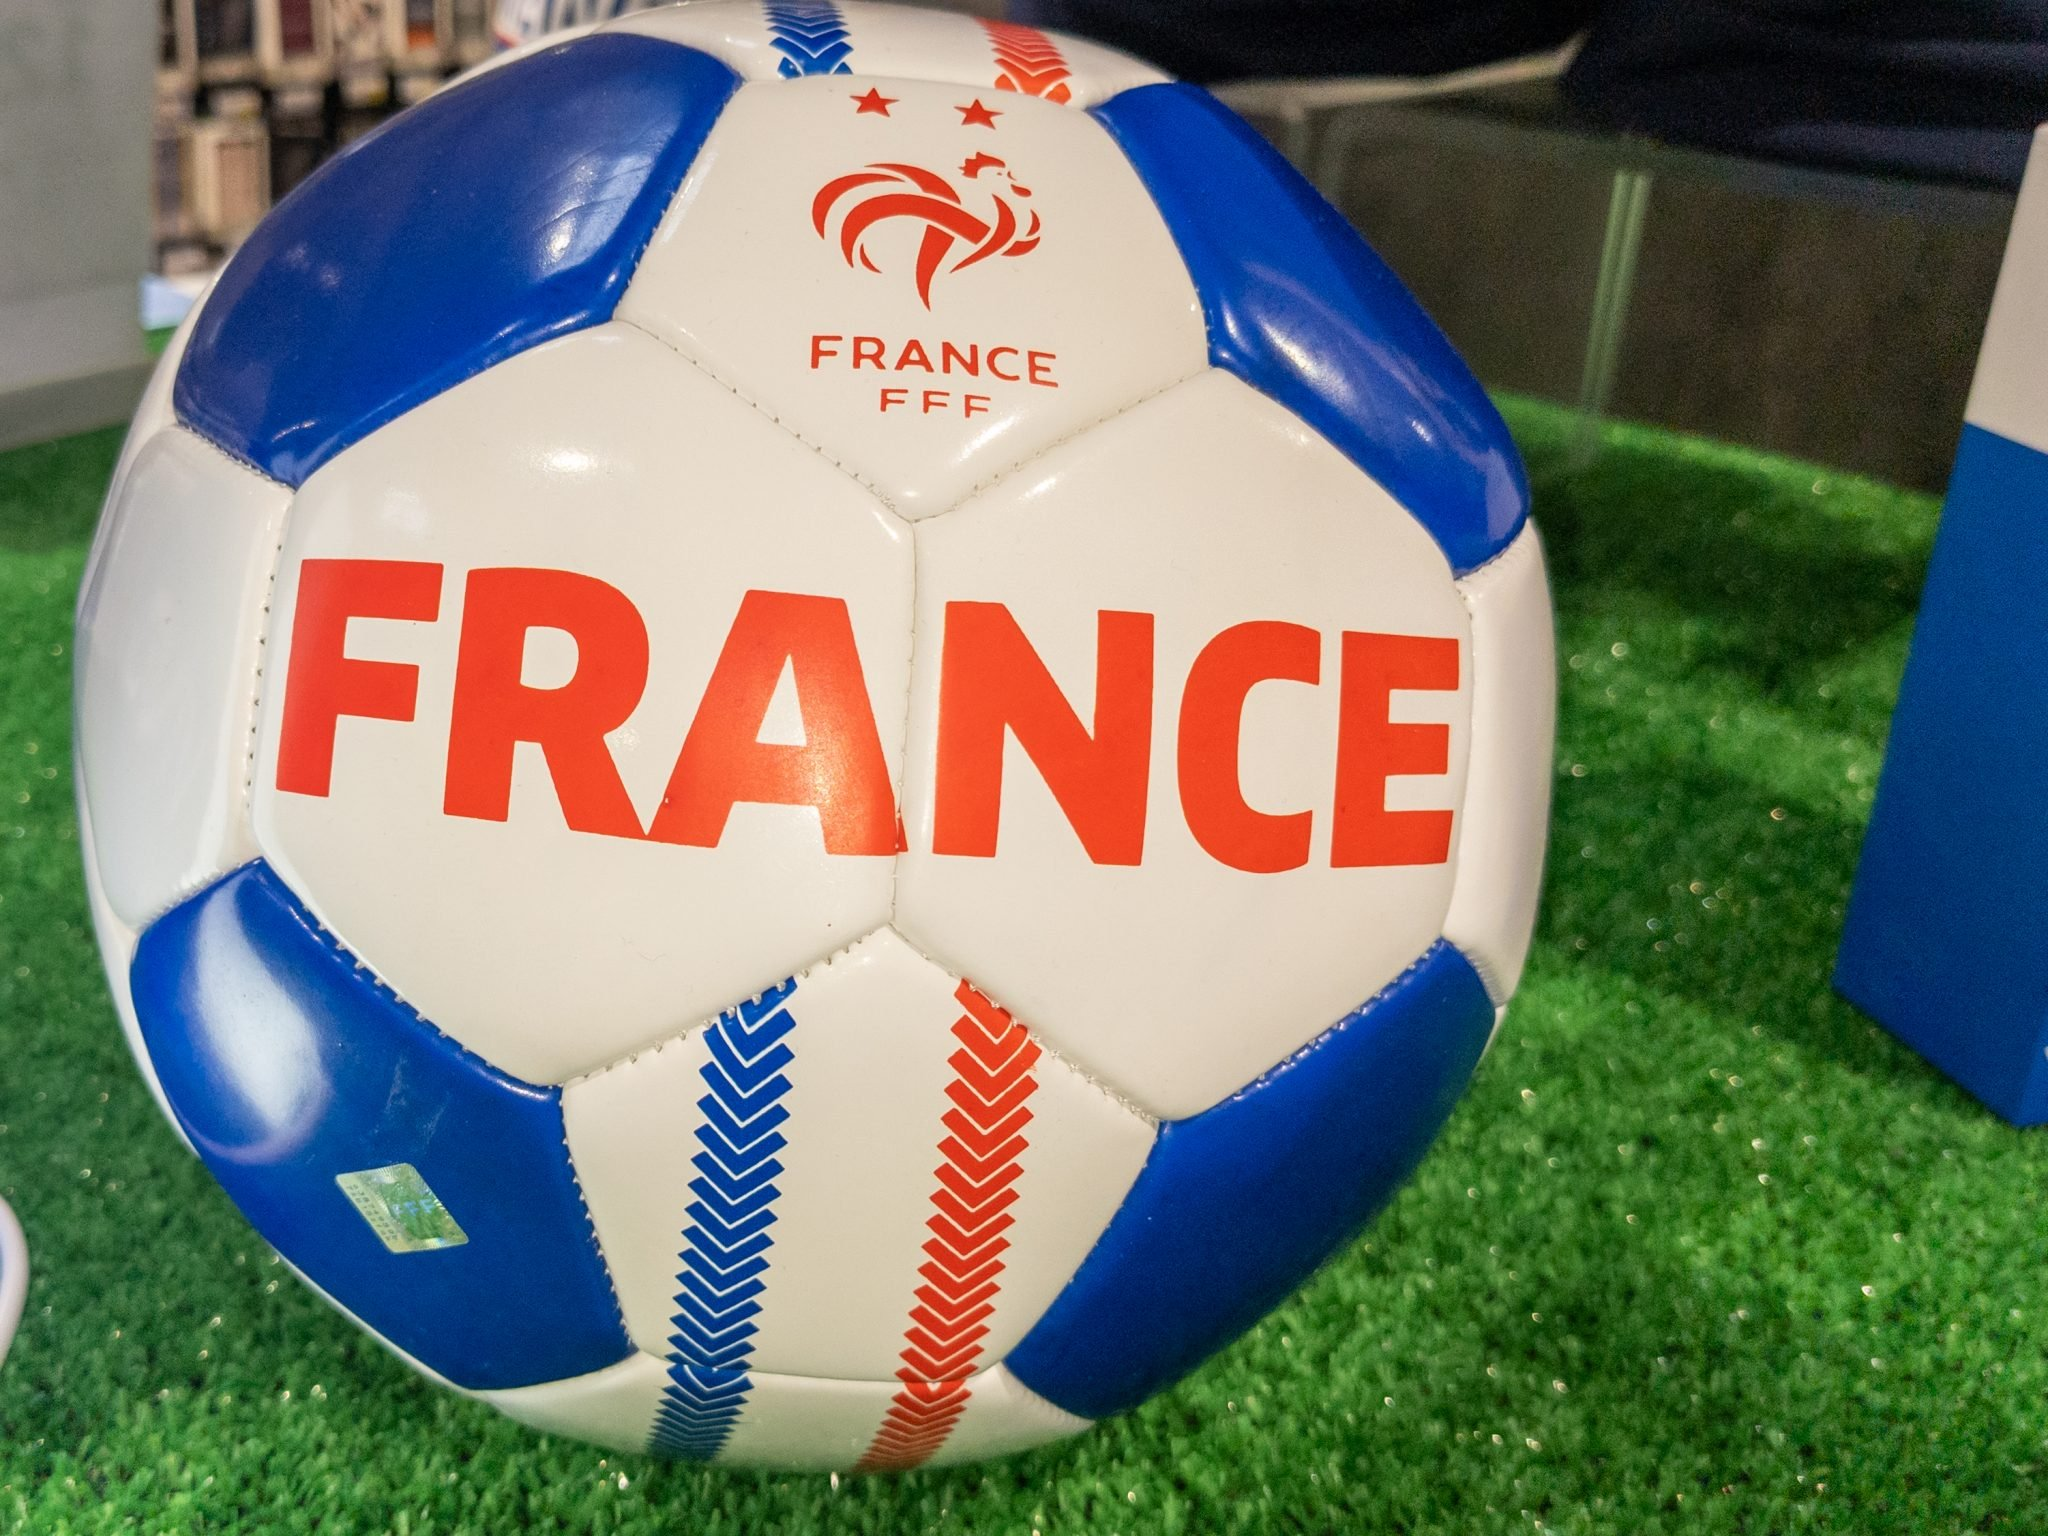 Bordeaux , Aquitaine France - 05 18 2021 : fff french football soccer ball with national flag of france